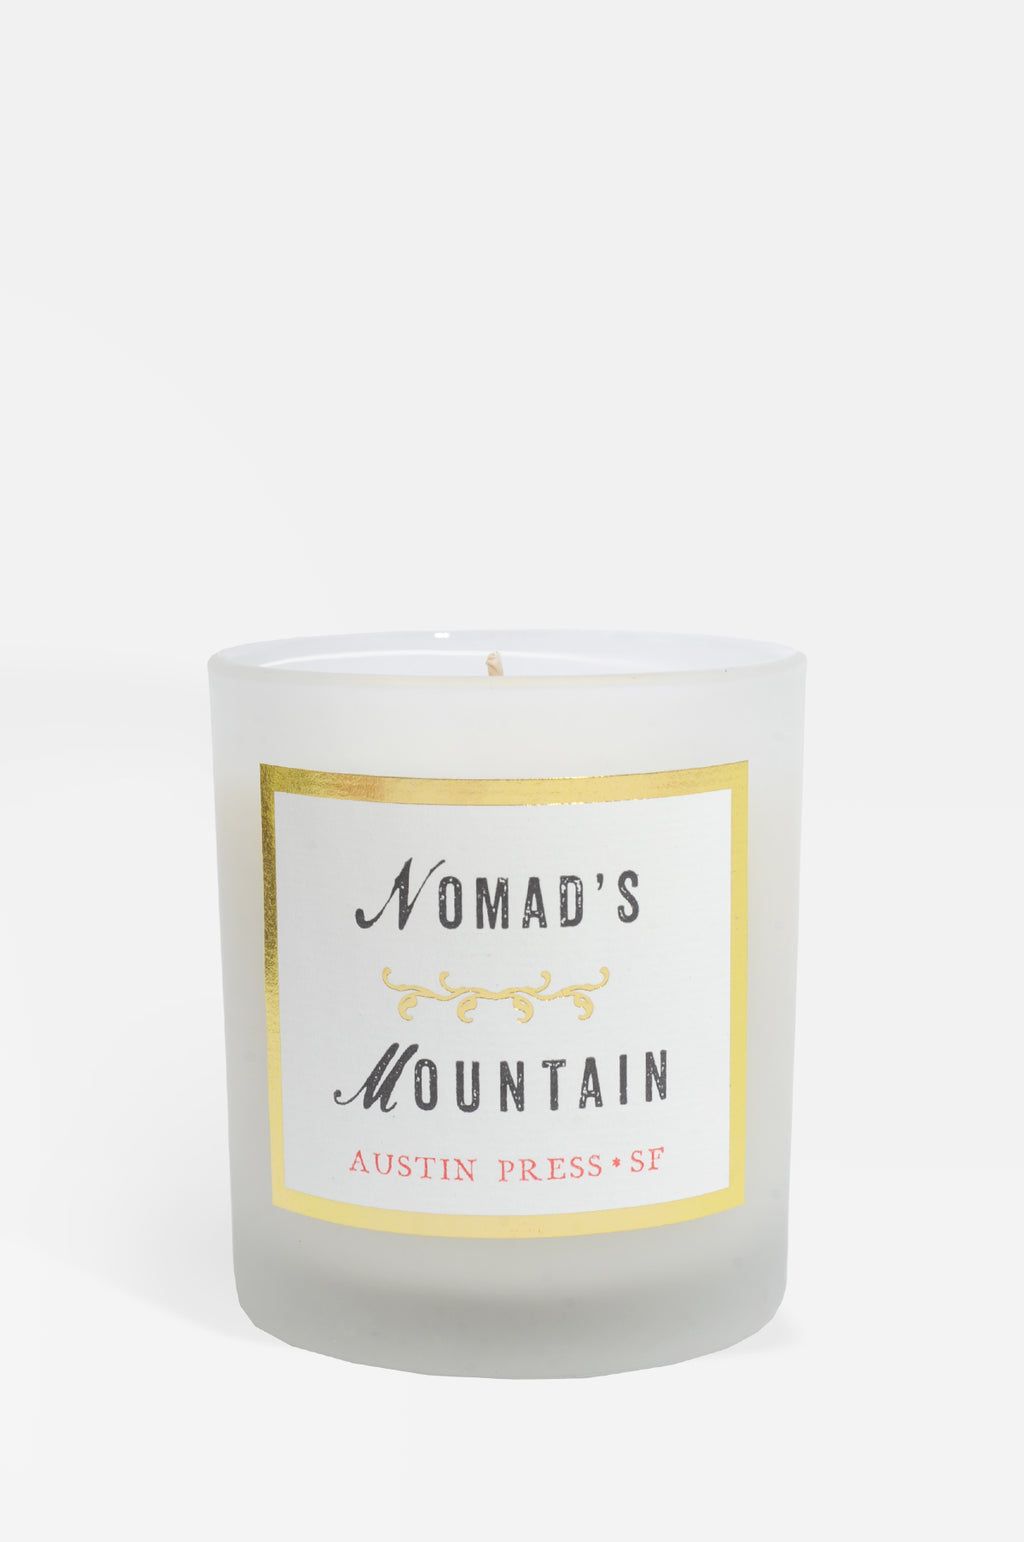 Nomads Mountian Candle